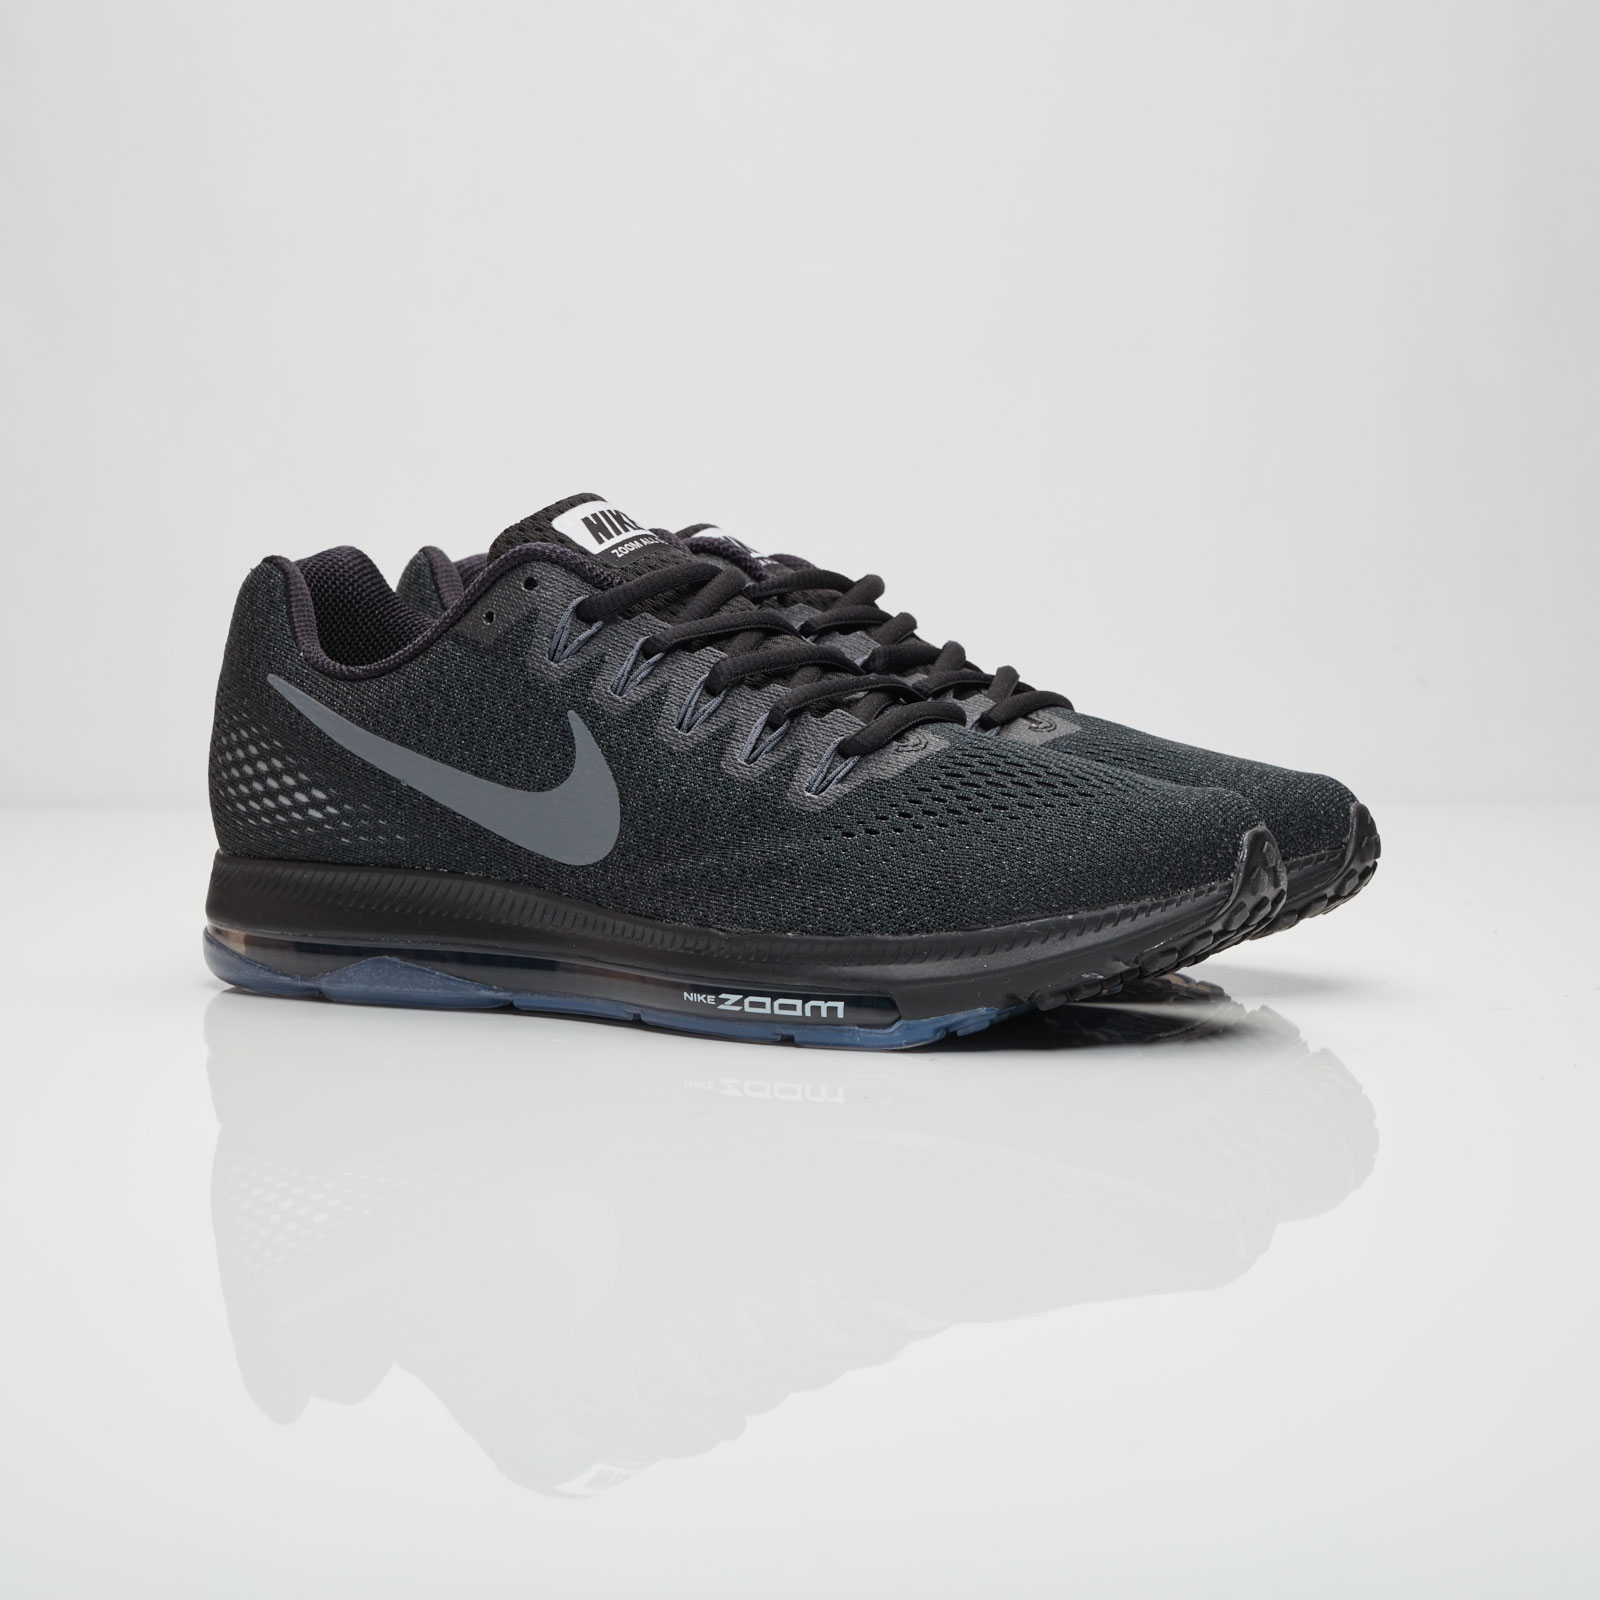 41c5830b0bf8 Nike Zoom All Out Low - 878670-001 - Sneakersnstuff